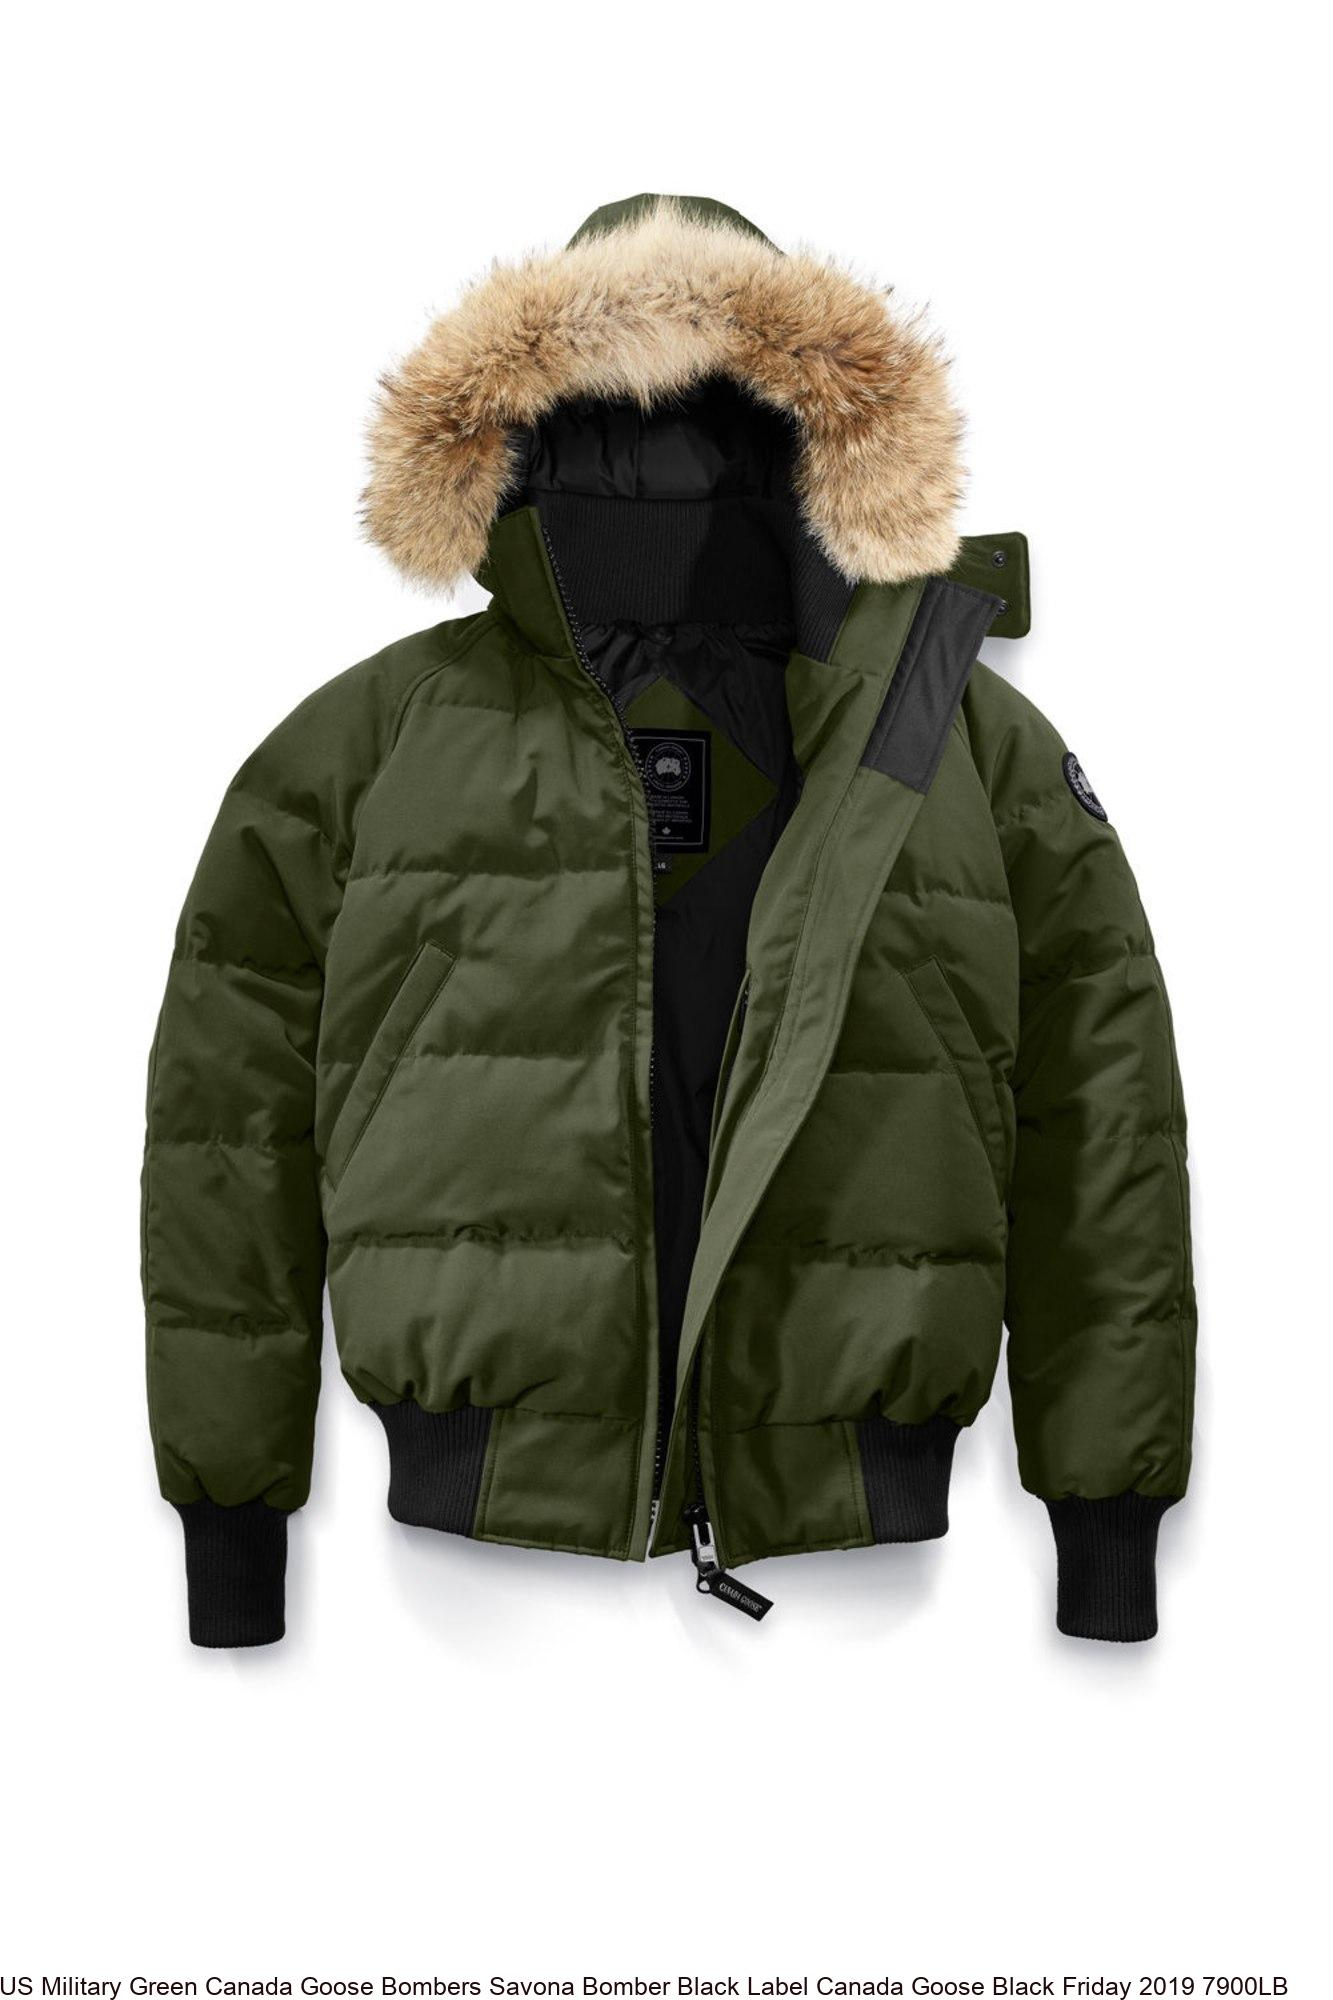 80a9db279 US Military Green Canada Goose Bombers Savona Bomber Black Label Canada  Goose Black Friday 2019 7900LB